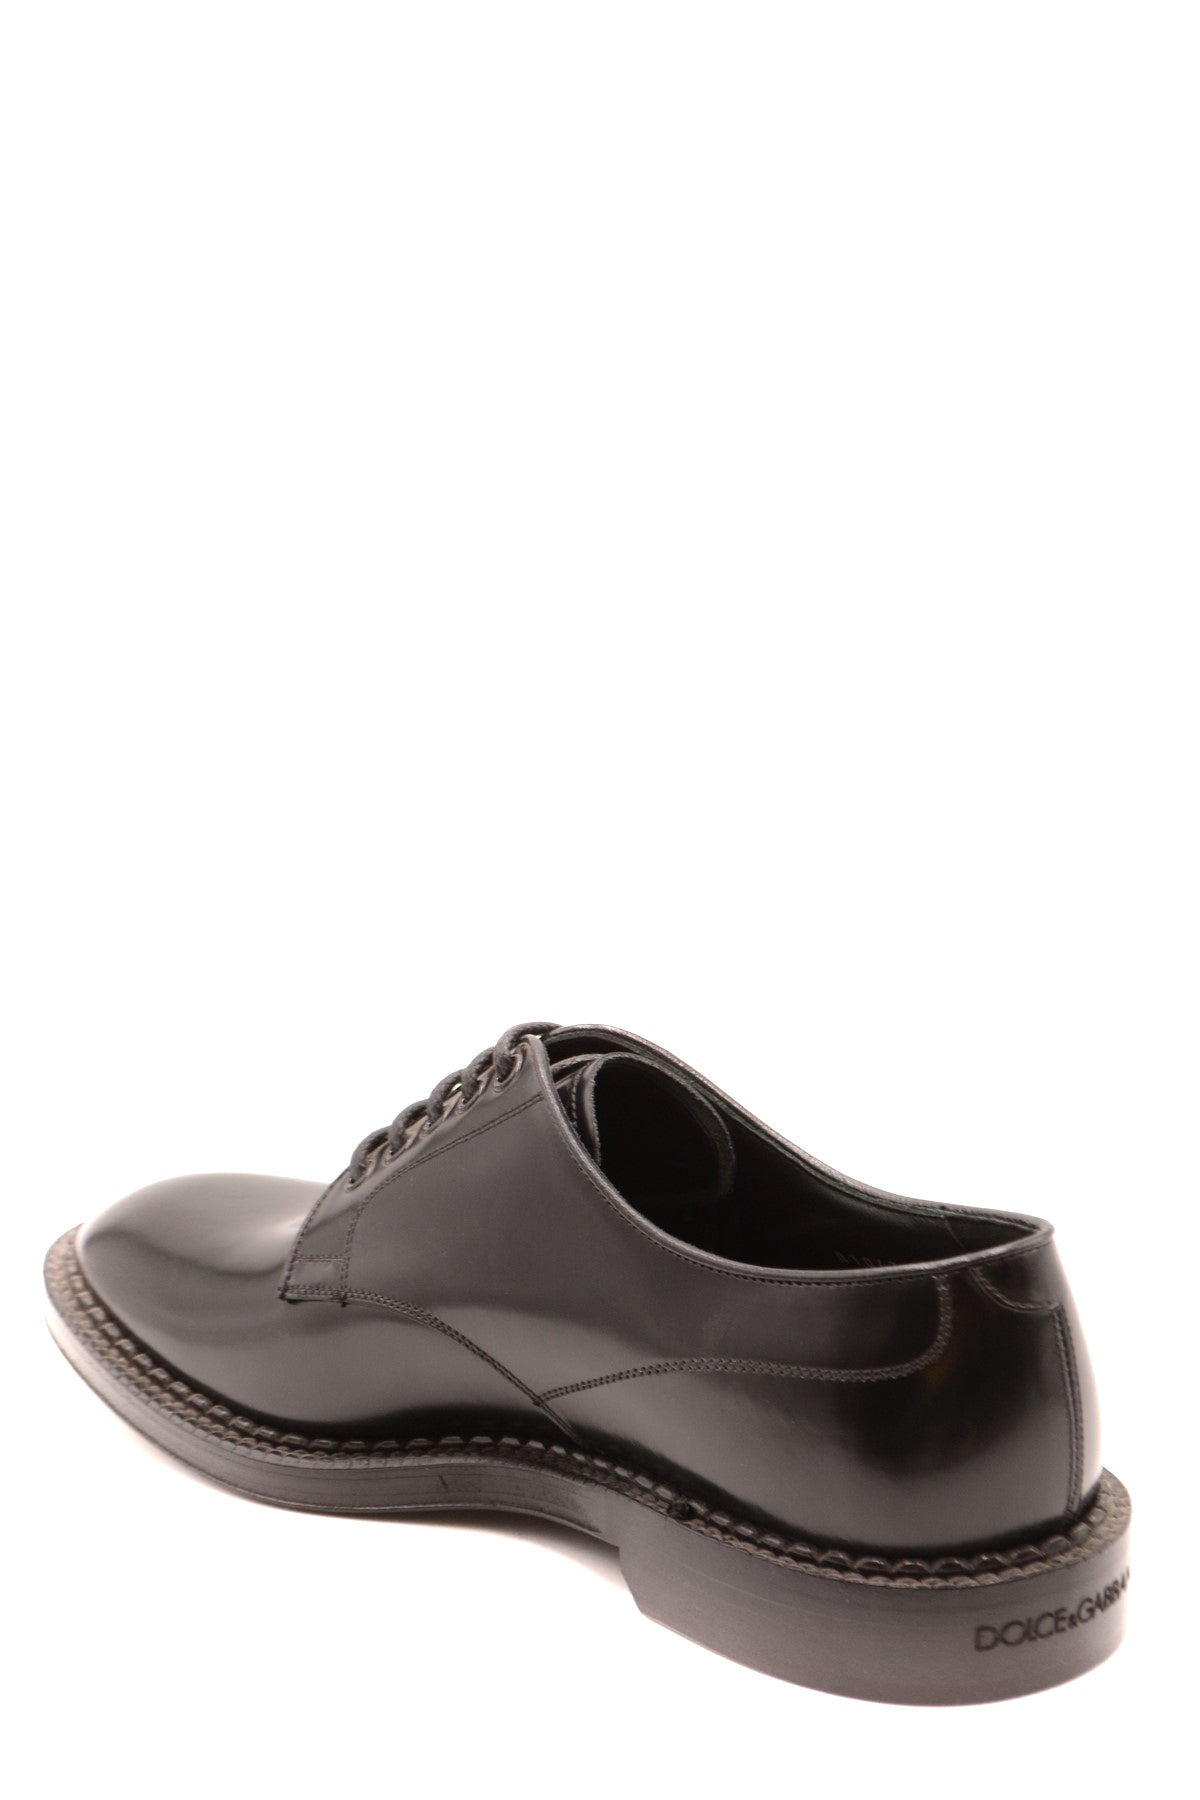 Shoes Dolce & Gabbana-Men's Fashion - Men's Shoes - Oxfords-Product Details Terms: New With LabelMain Color: BlackType Of Accessory: ShoesSeason: Fall / WinterMade In: ItalyGender: ManSize: EuComposition: Leather 100%Year: 2019Manufacturer Part Number: A10471 Aa384 80999 Nero-Keyomi-Sook